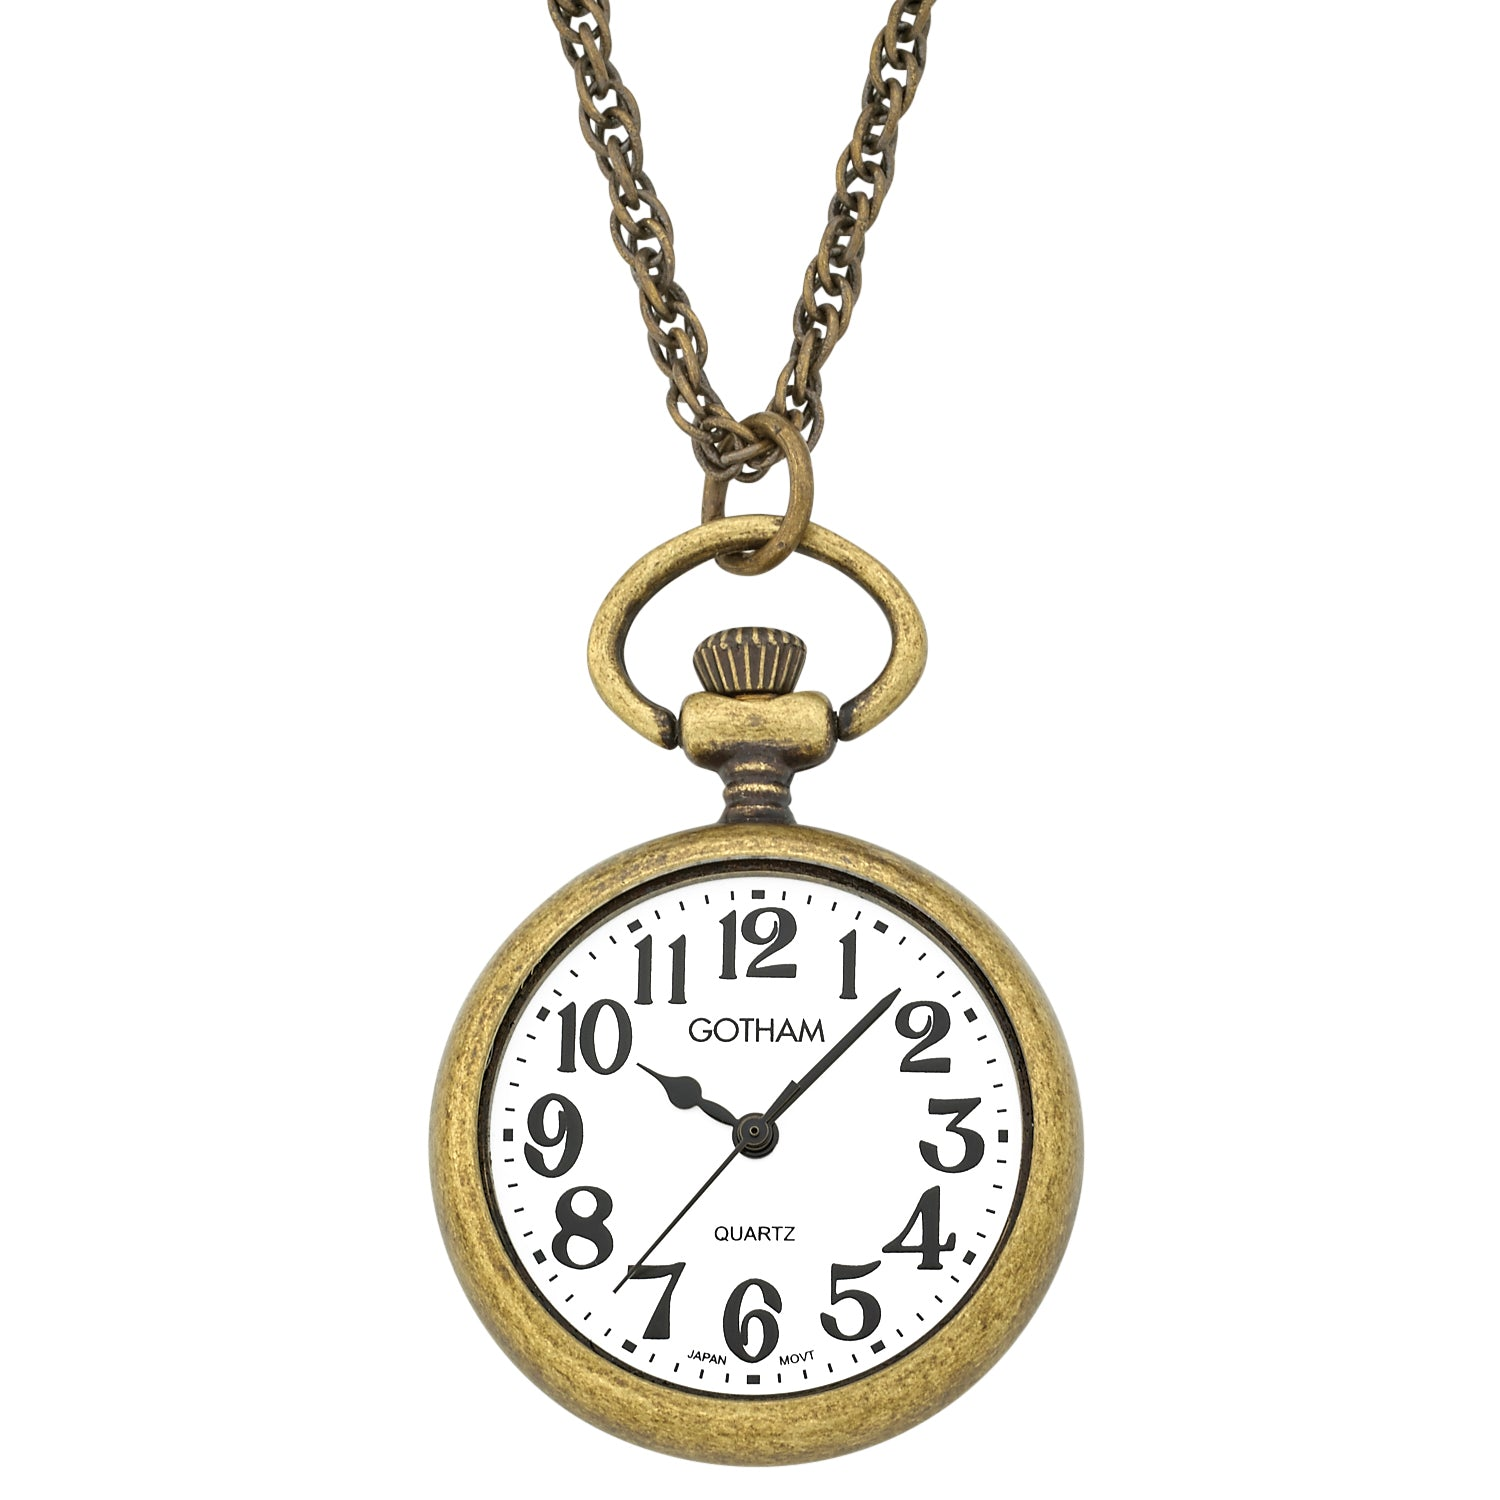 watch woodford quartz pendant face necklace plated gold open image